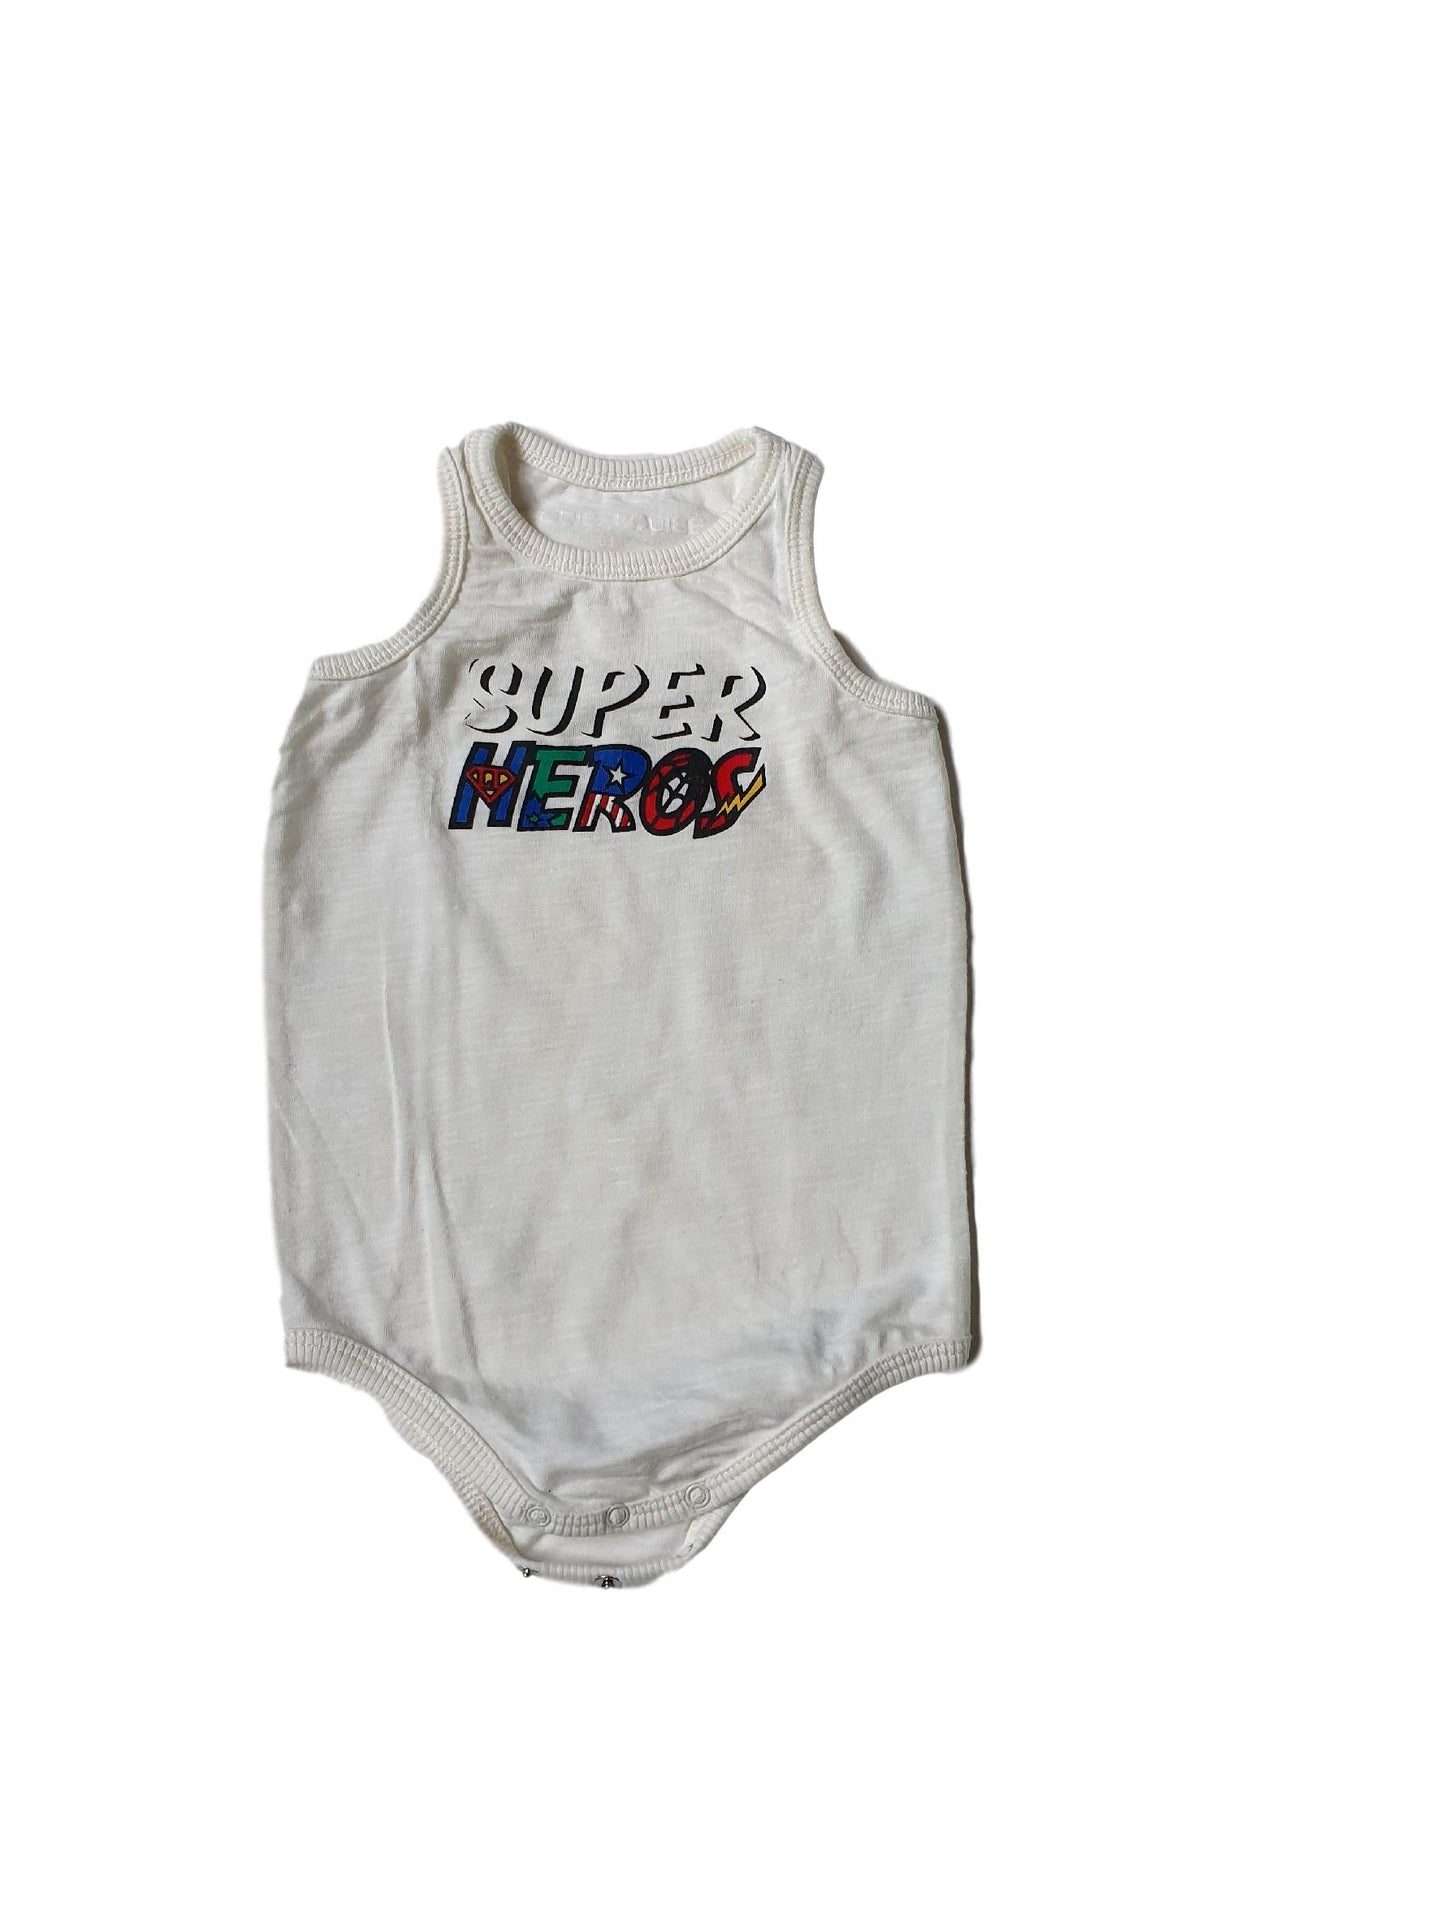 LOUIS LOUISE boy bodysuit 6m